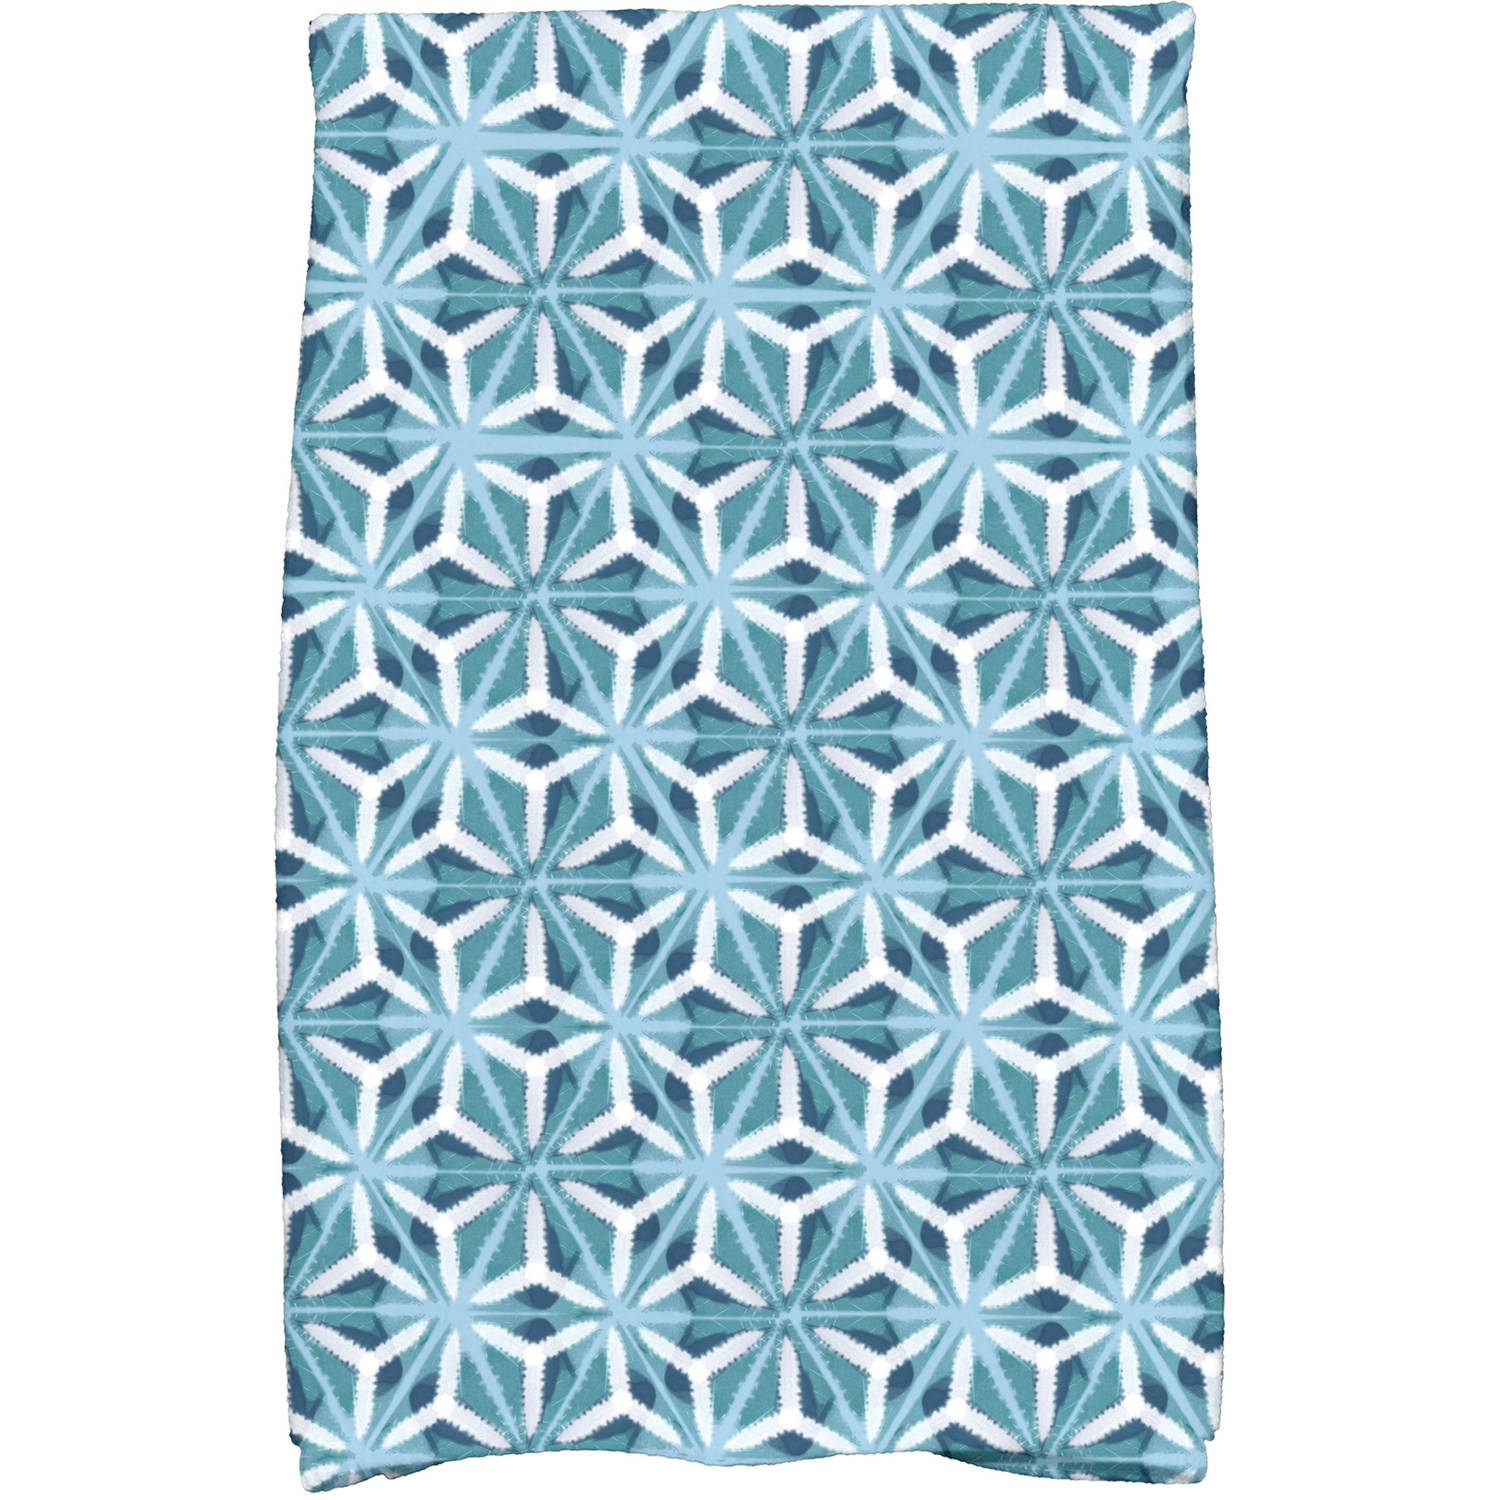 "Simply Daisy 16"" x 25"" Water Mosaic Geometric Print Kitchen Towel by E By Design"